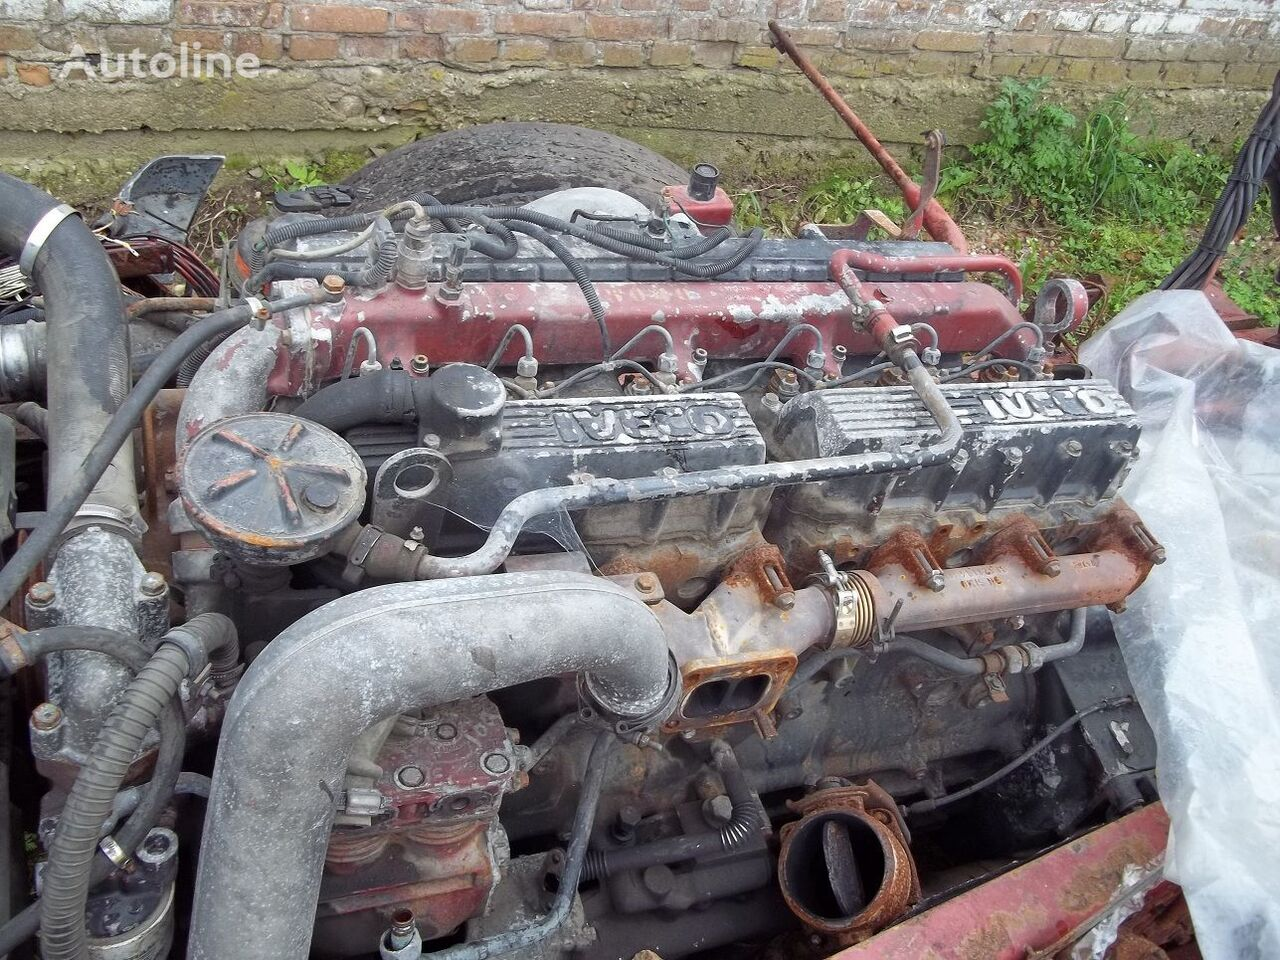 FIAT 8460.41L 375 l.s., 1998 g.v. engine for IVECO Eurotech tractor unit